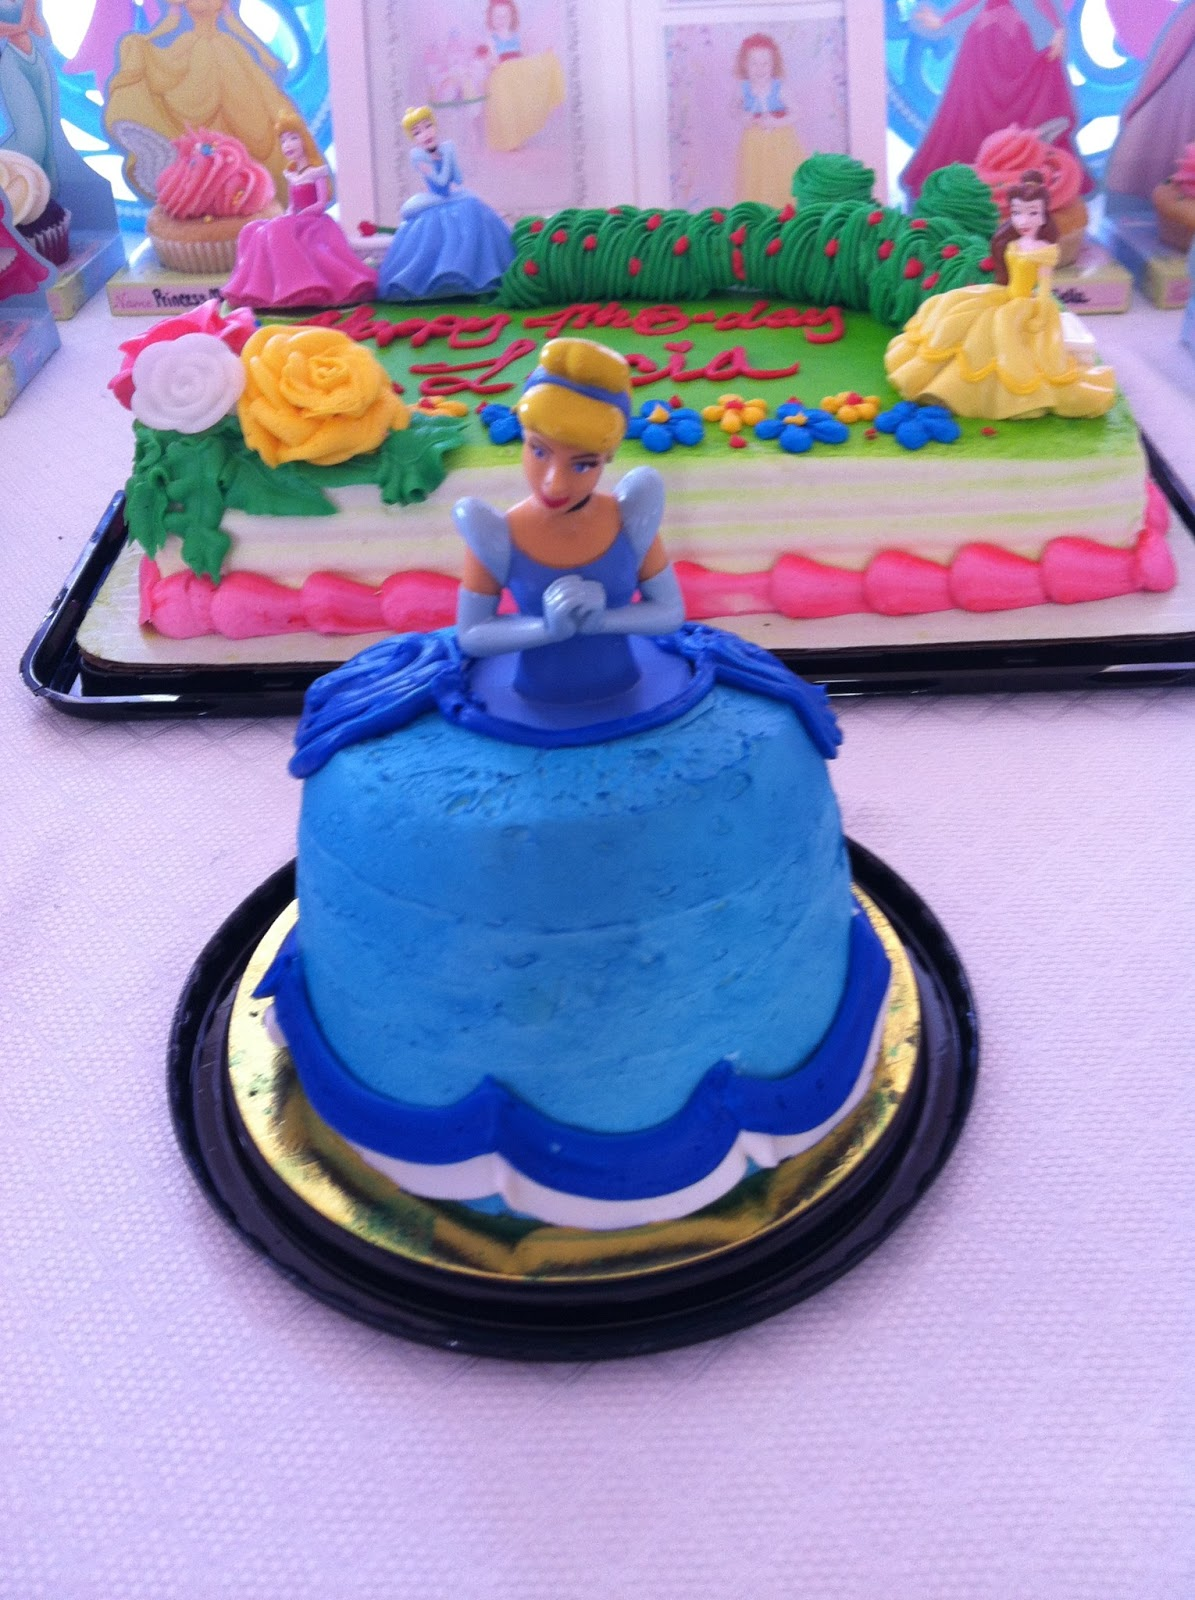 Disney Princess Birthday Party Because every birthday deserves a